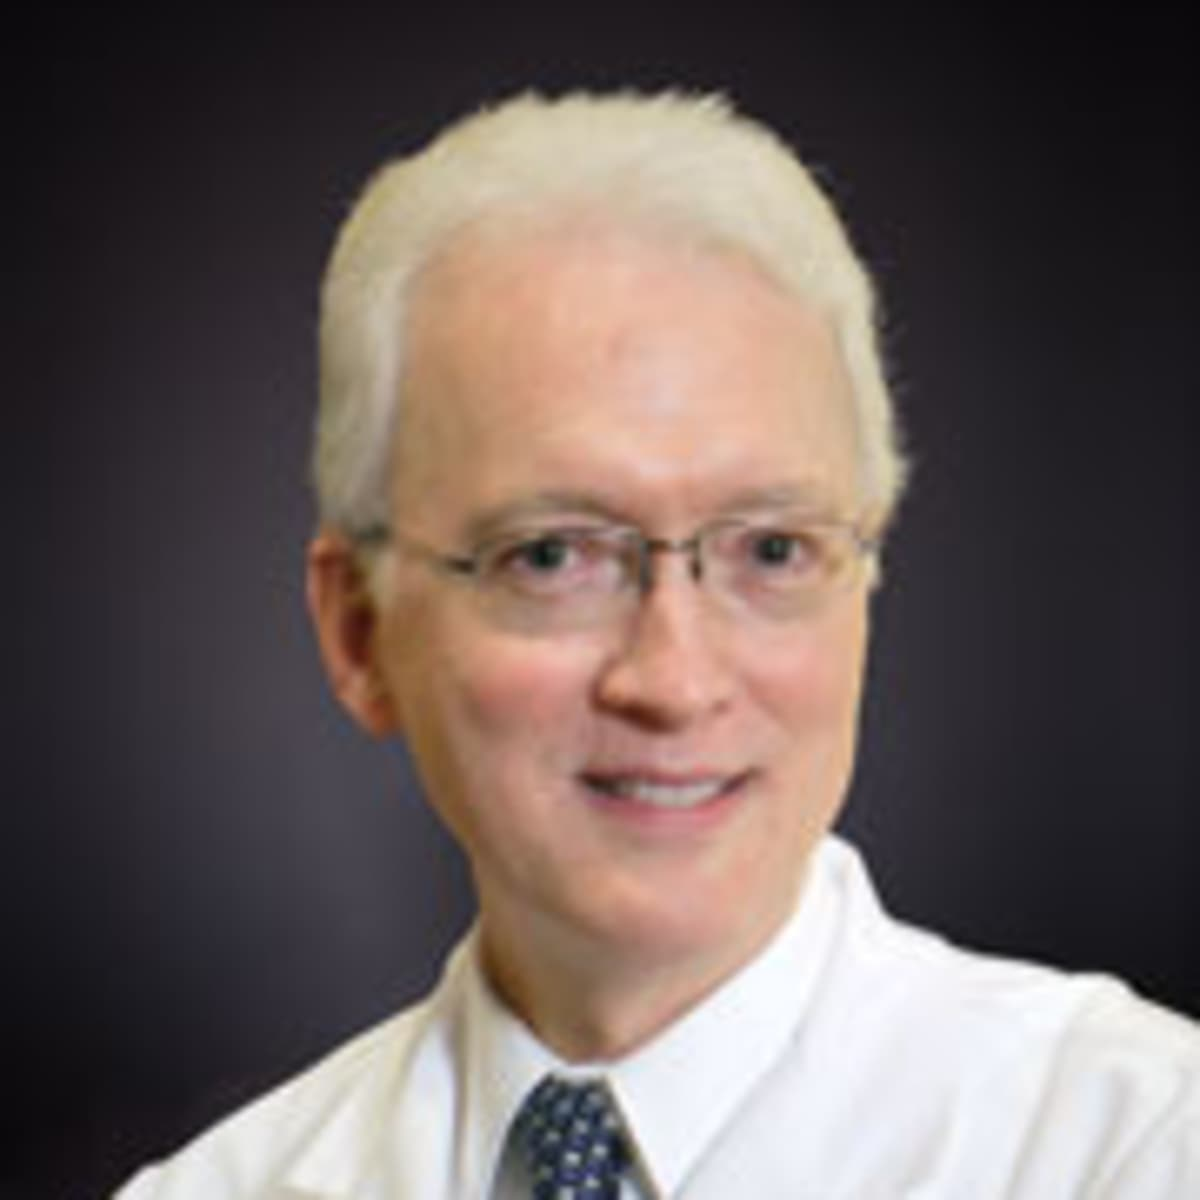 Video Dr Robert Bastian Md Downers Grove Il